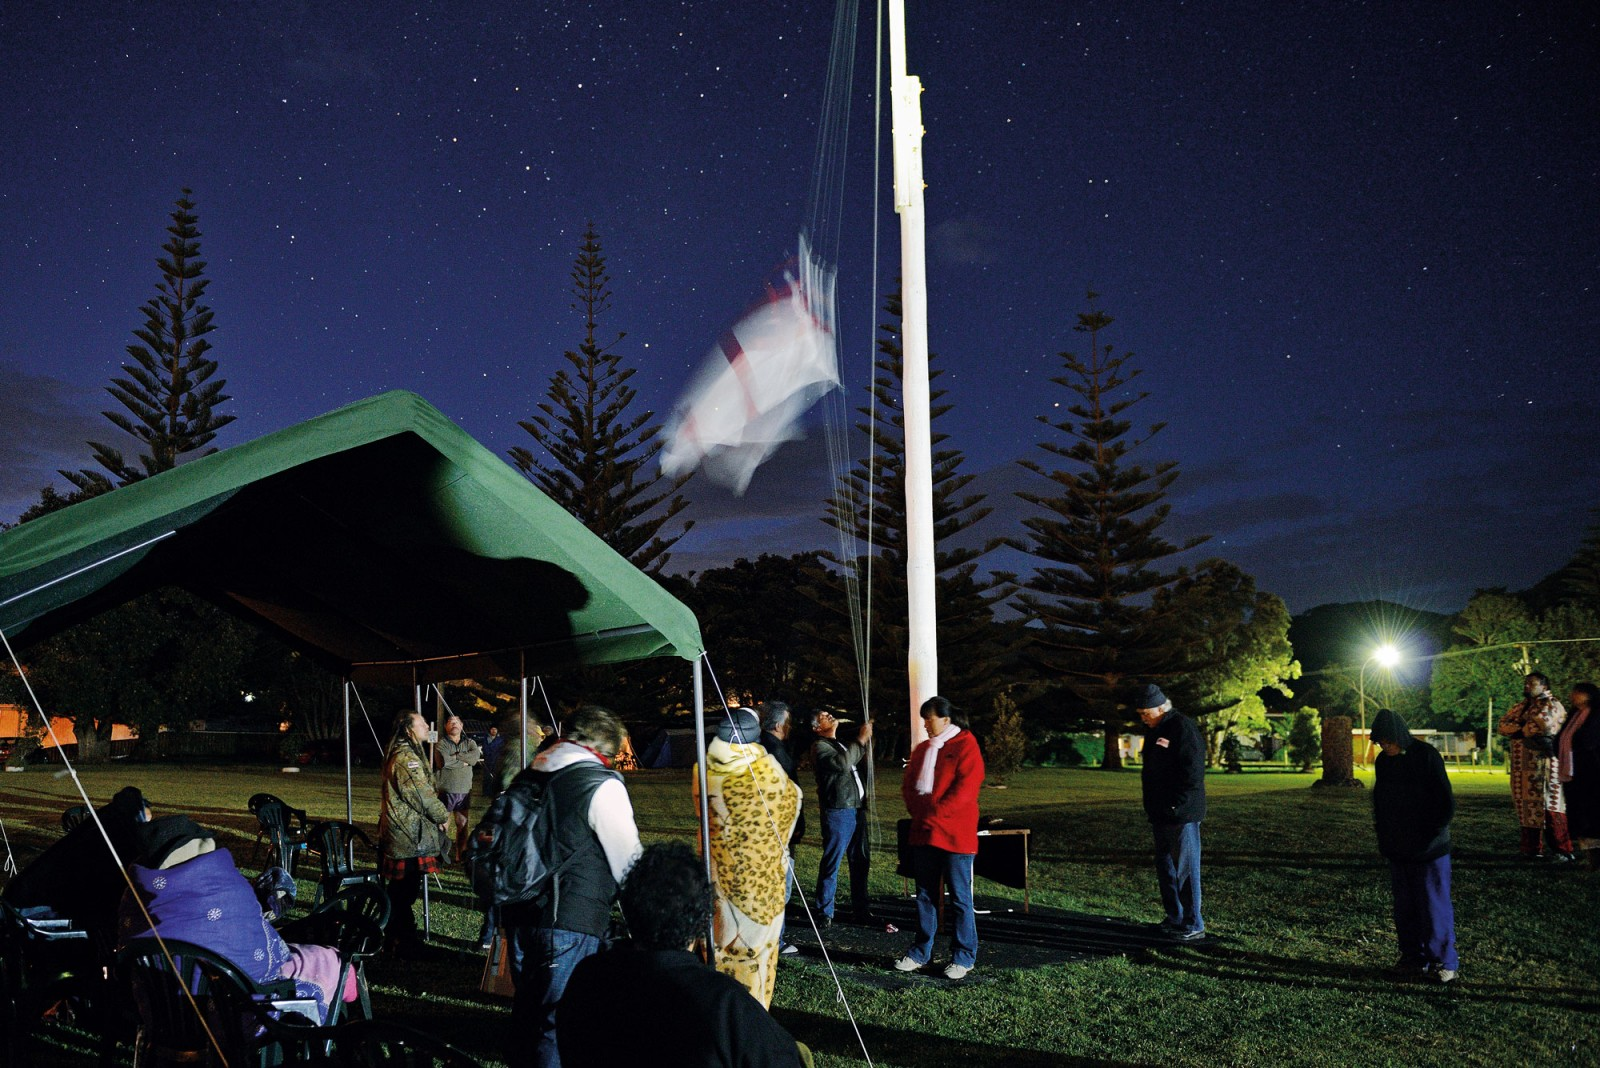 The flag of the Confederation of United Tribes ascends the flagpole at Te Tii marae, Waitangi, before dawn on October 28, 2013—'Independence Day', to Ngapuhi, because it marks their ancestors' assertion of rangatiratanga (sovereign authority) in 1835. The flag, chosen by Ngapuhi chiefs in 1834 and known as Te Kara (the colour), has enjoyed a renaissance in recent years as the Maori sovereignty movement has gained political ground. There are even small adhesive versions available for car windows.